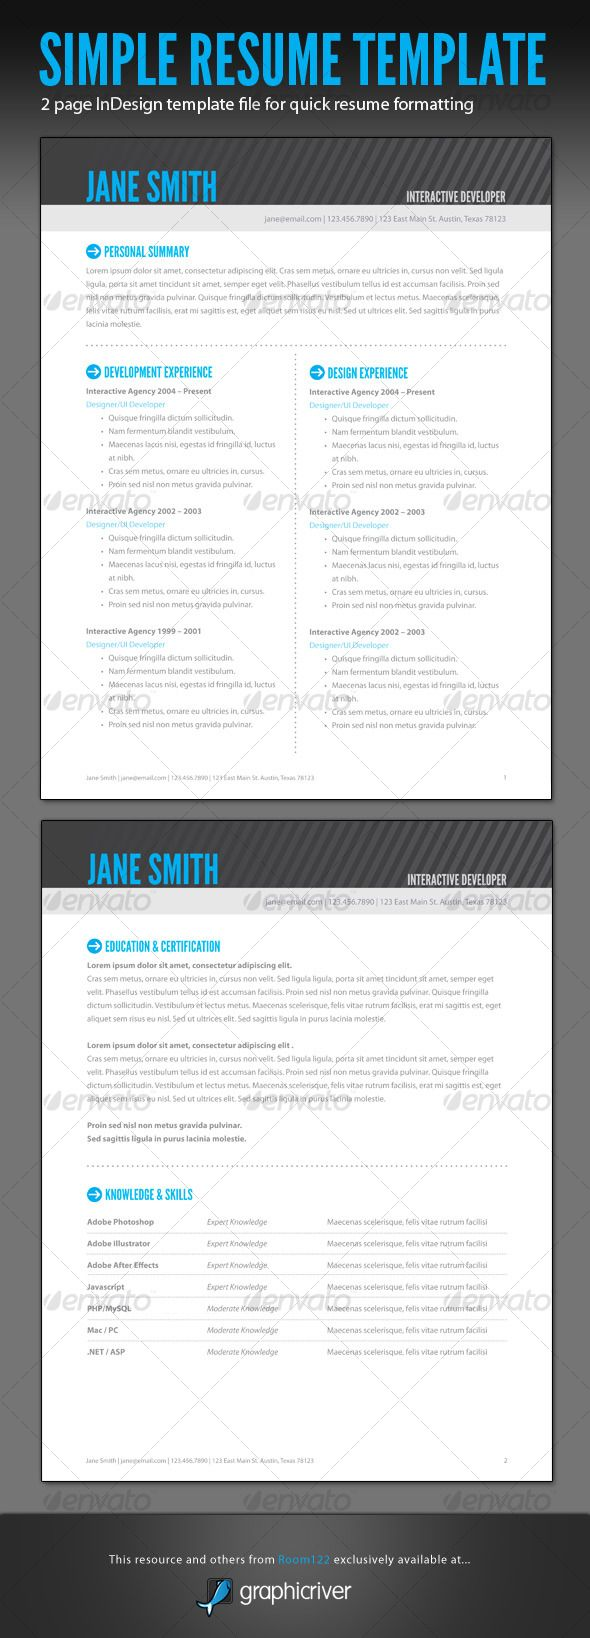 Simple Resume  Indesign Template  Simple Resume Indesign